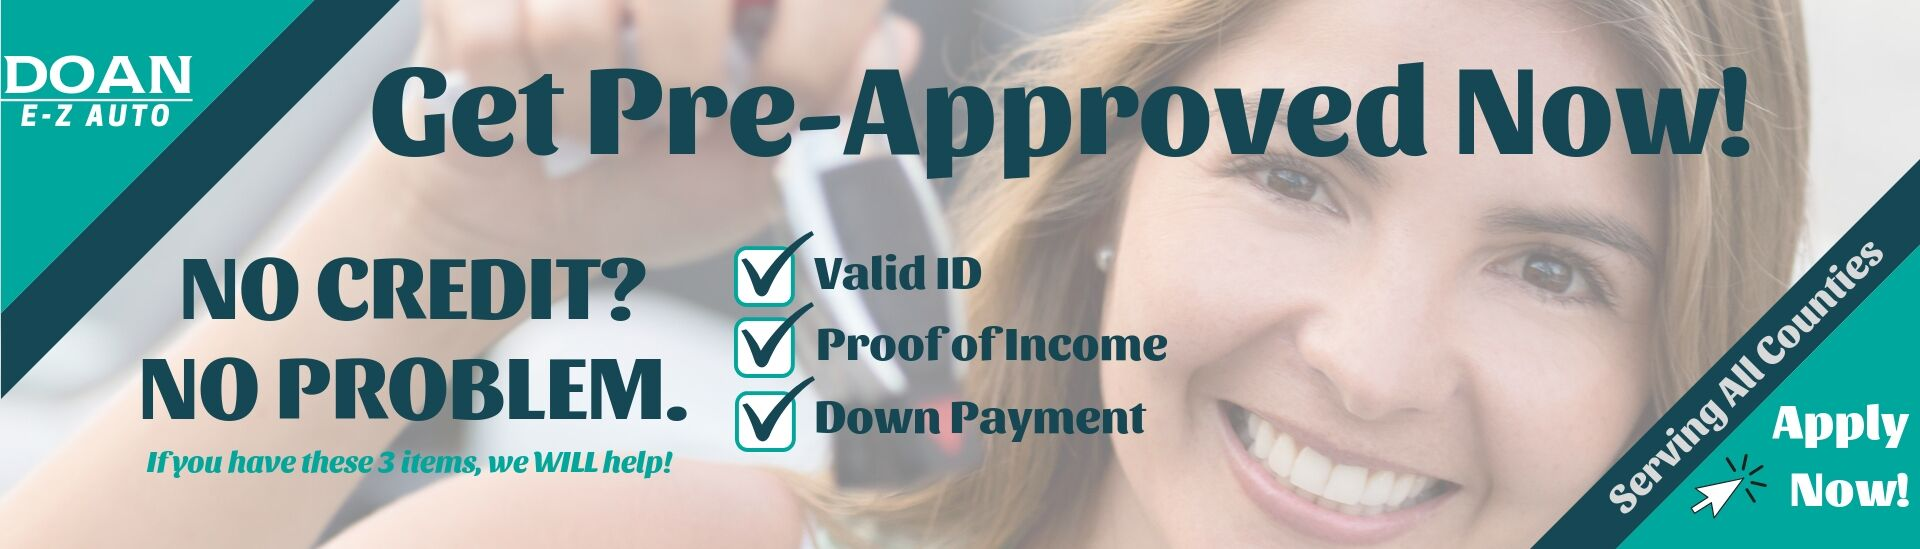 Doan E-Z Auto offers Guaranteed Credit Approval